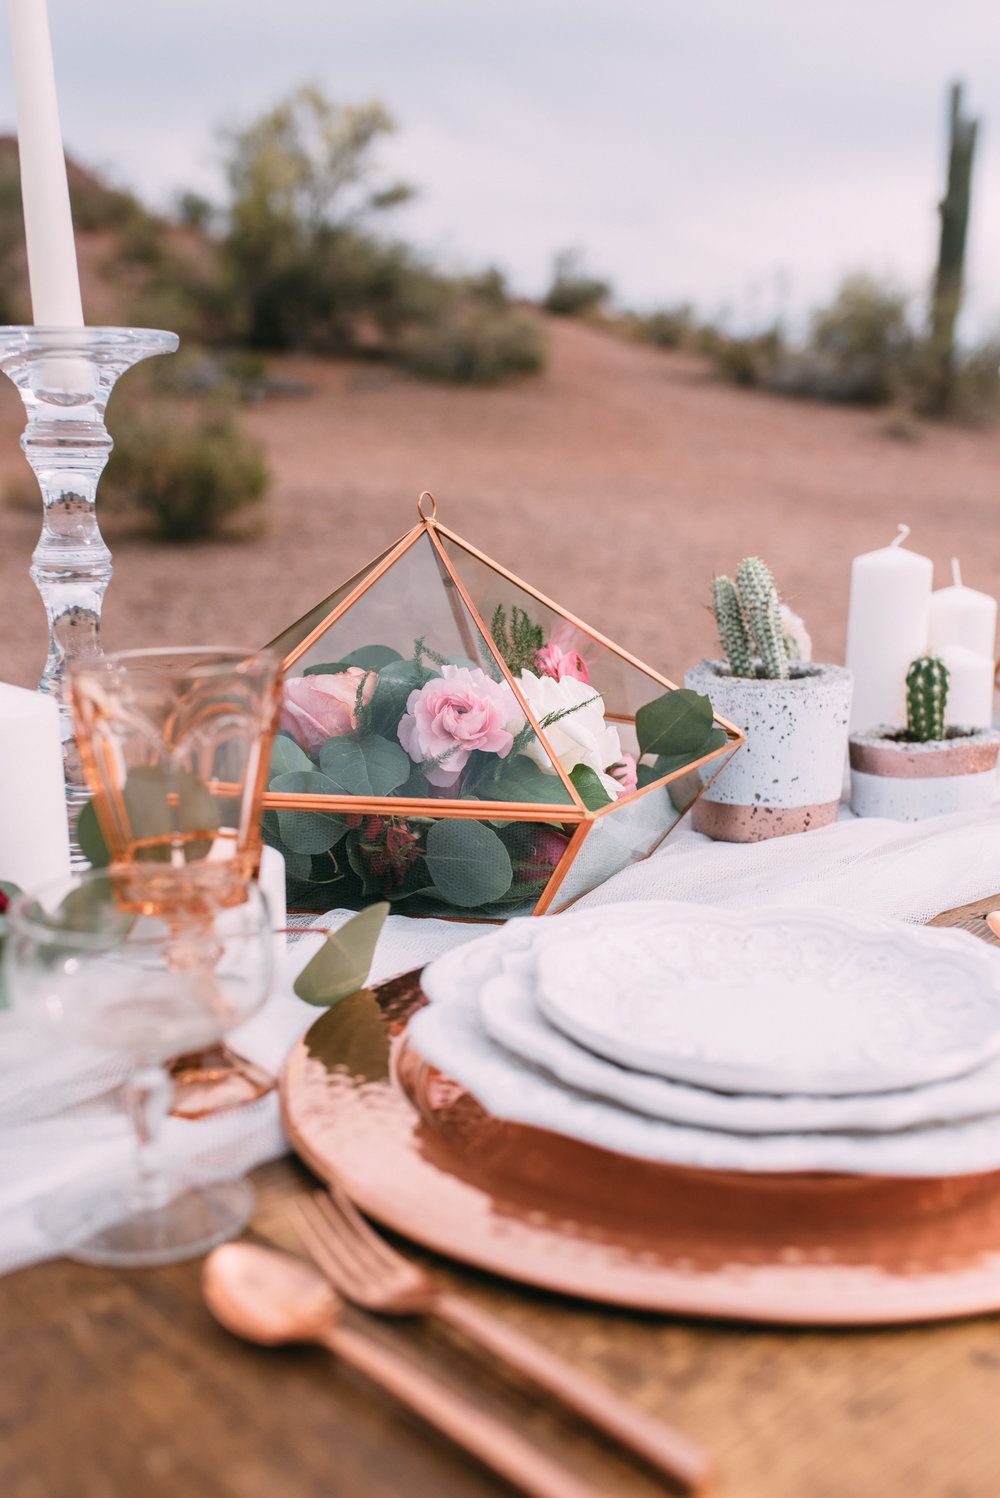 copper and white wedding place setting with potted cactus